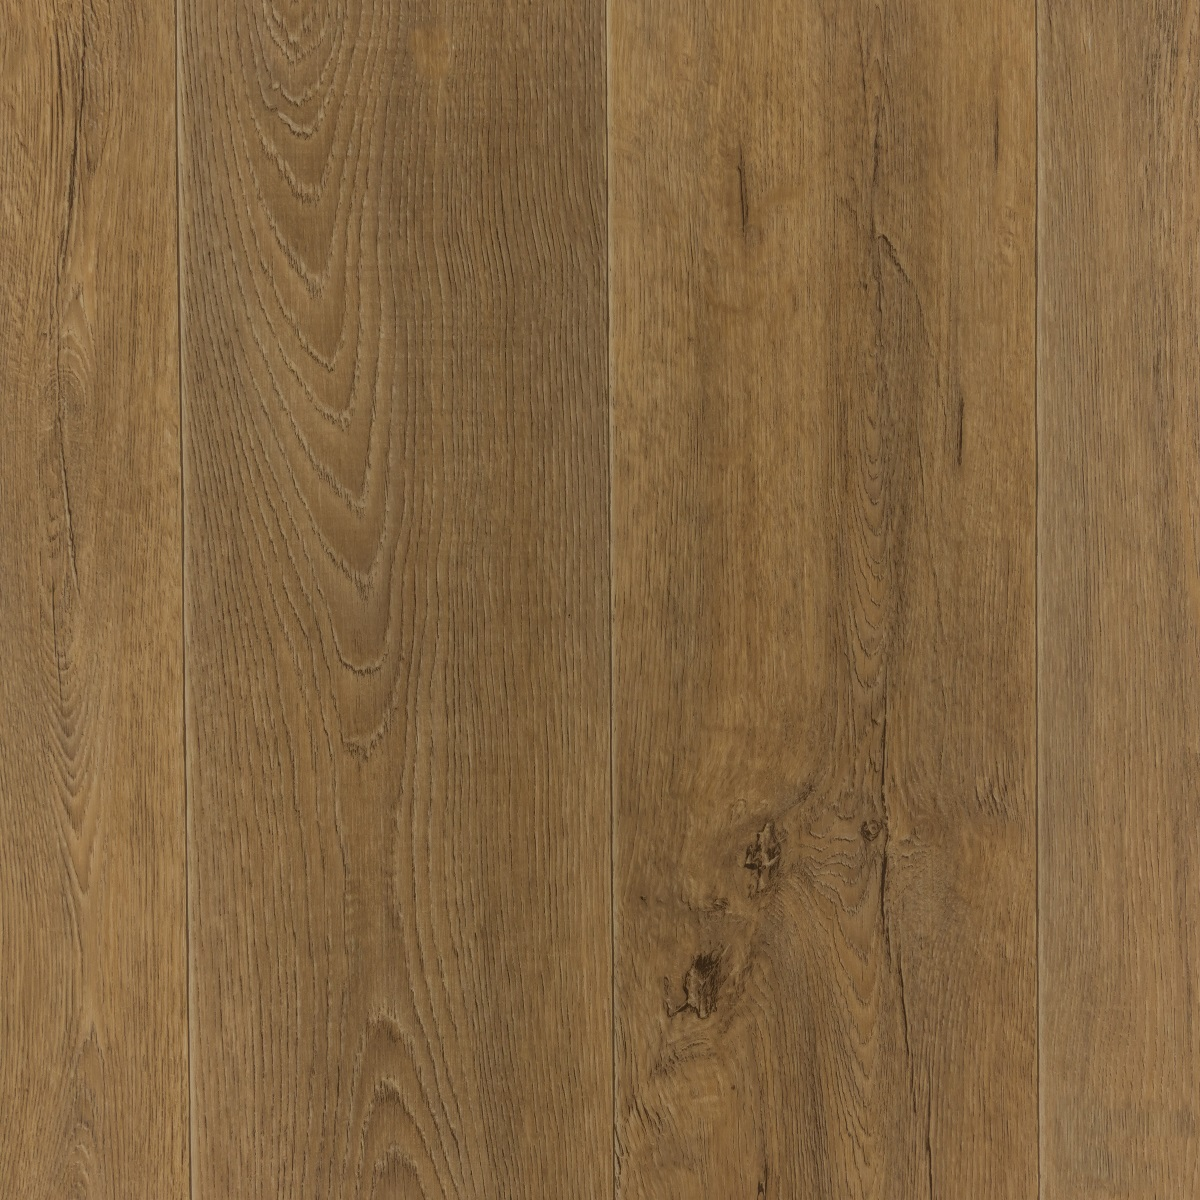 Noblesse Legacy Oak Light natural 062